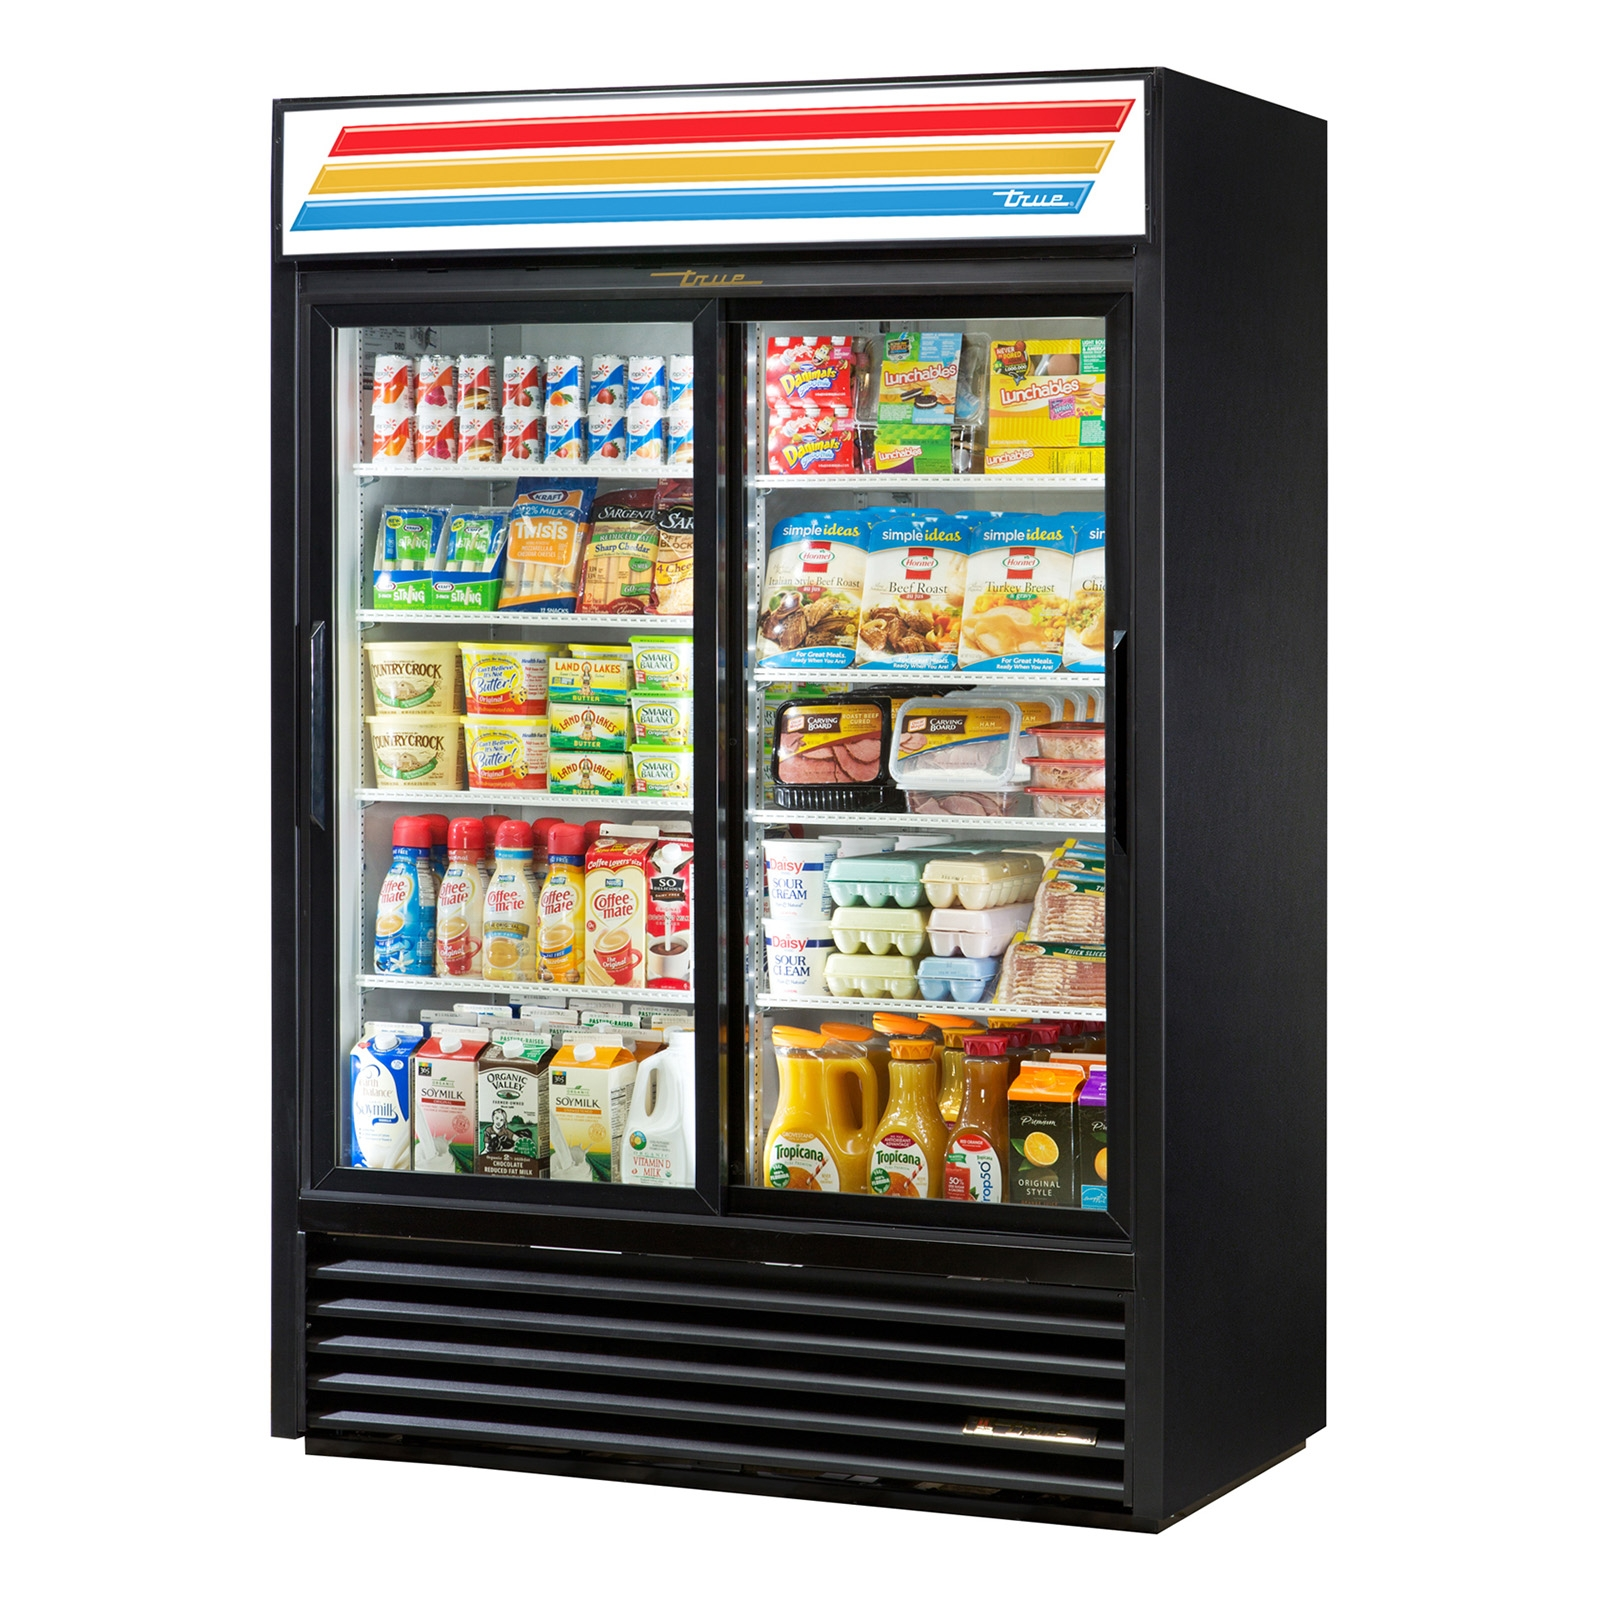 GDM-47-LD – True Display Refrigerator